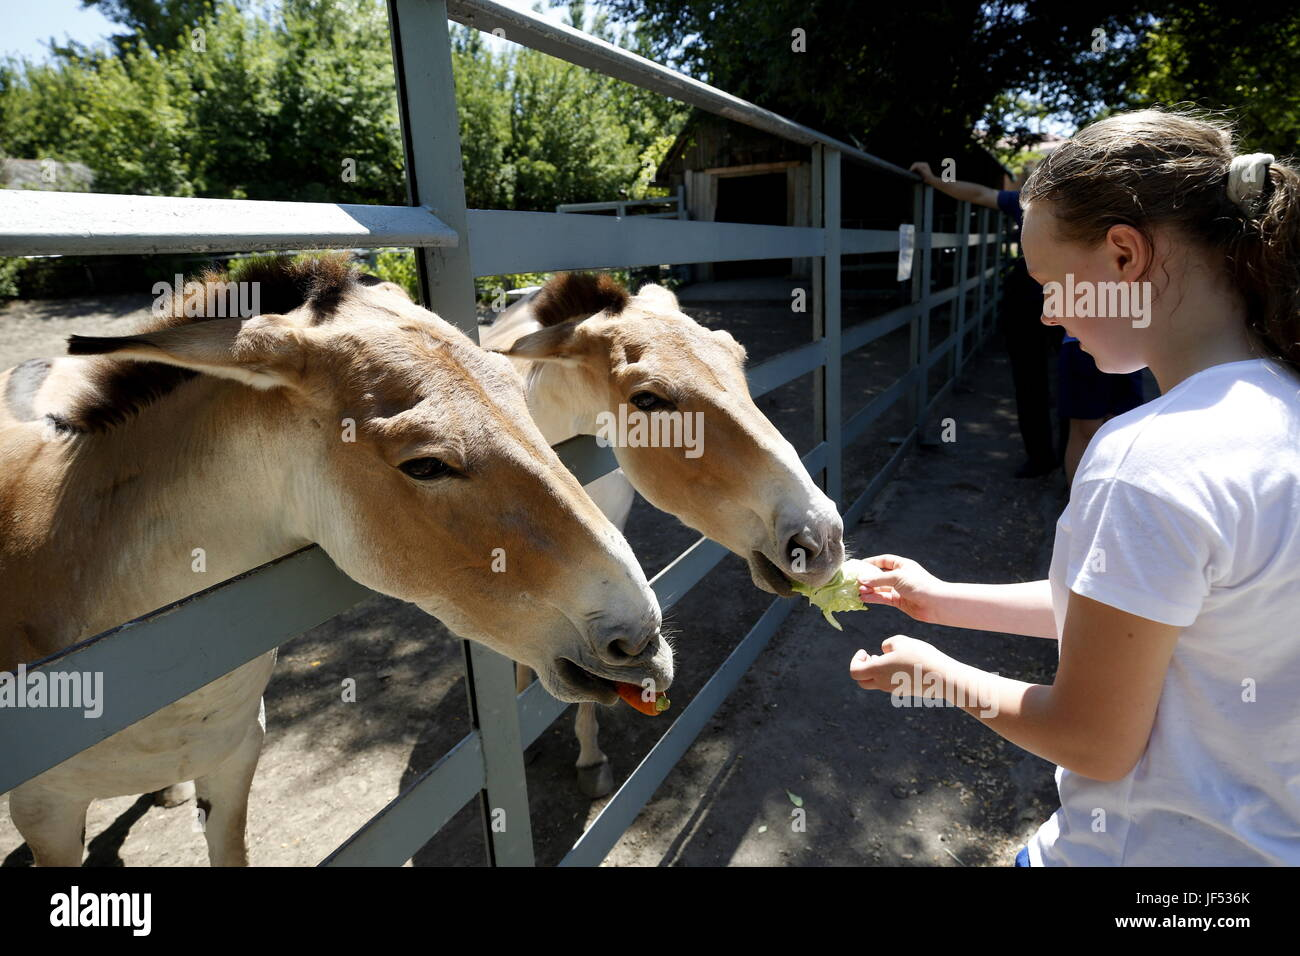 ROSTOV-ON-DON, RUSSIA – JUNE 28, 2017: Feeding onagers at the Rostov-on-Don Zoo. Valery Matytsin/TASS - Stock Image